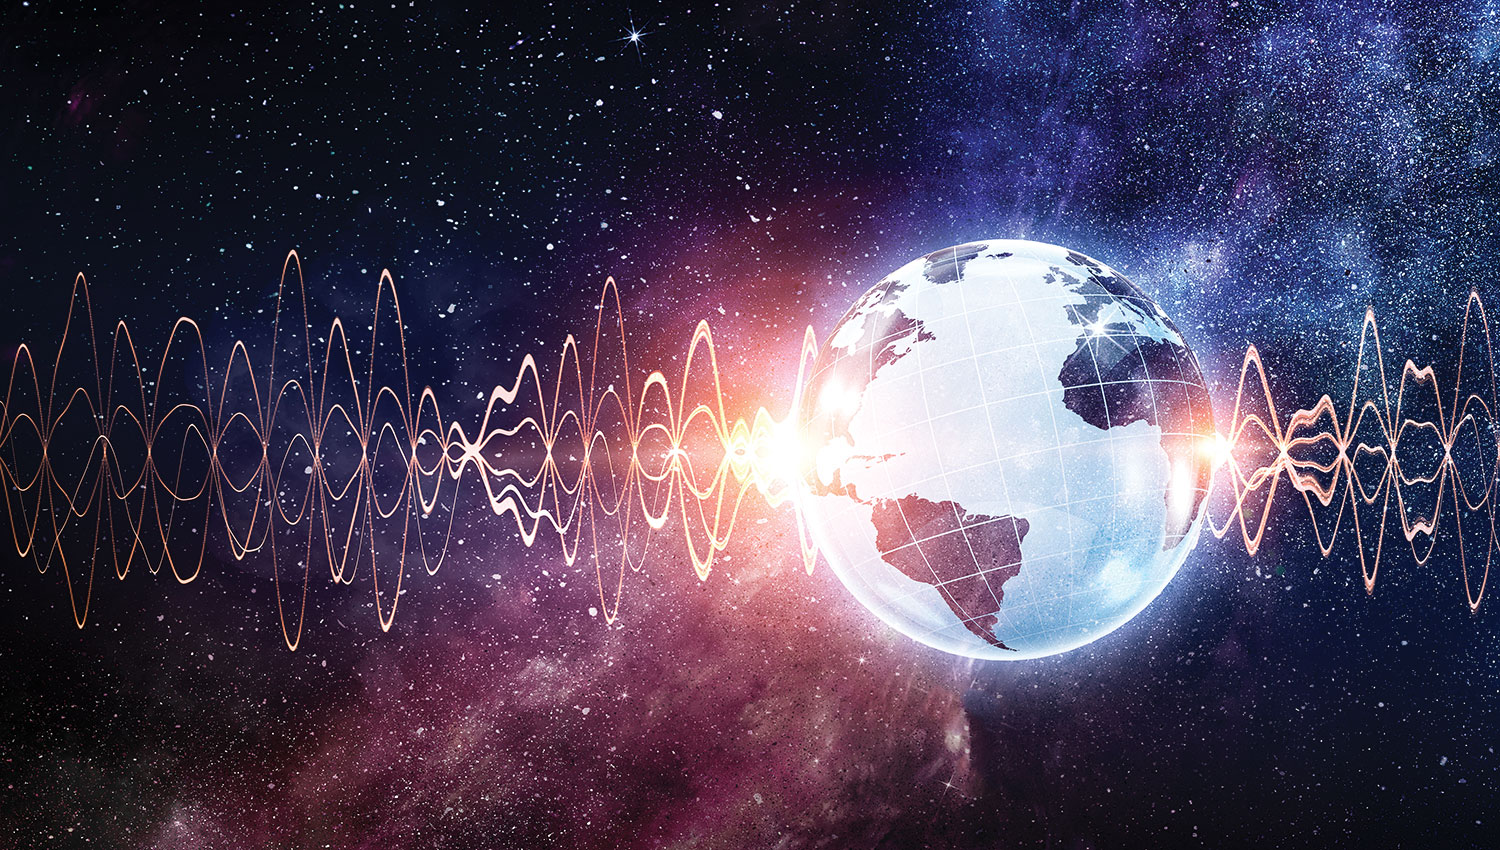 10 Noisiest Sounds Ever Recorded on Planet Earth